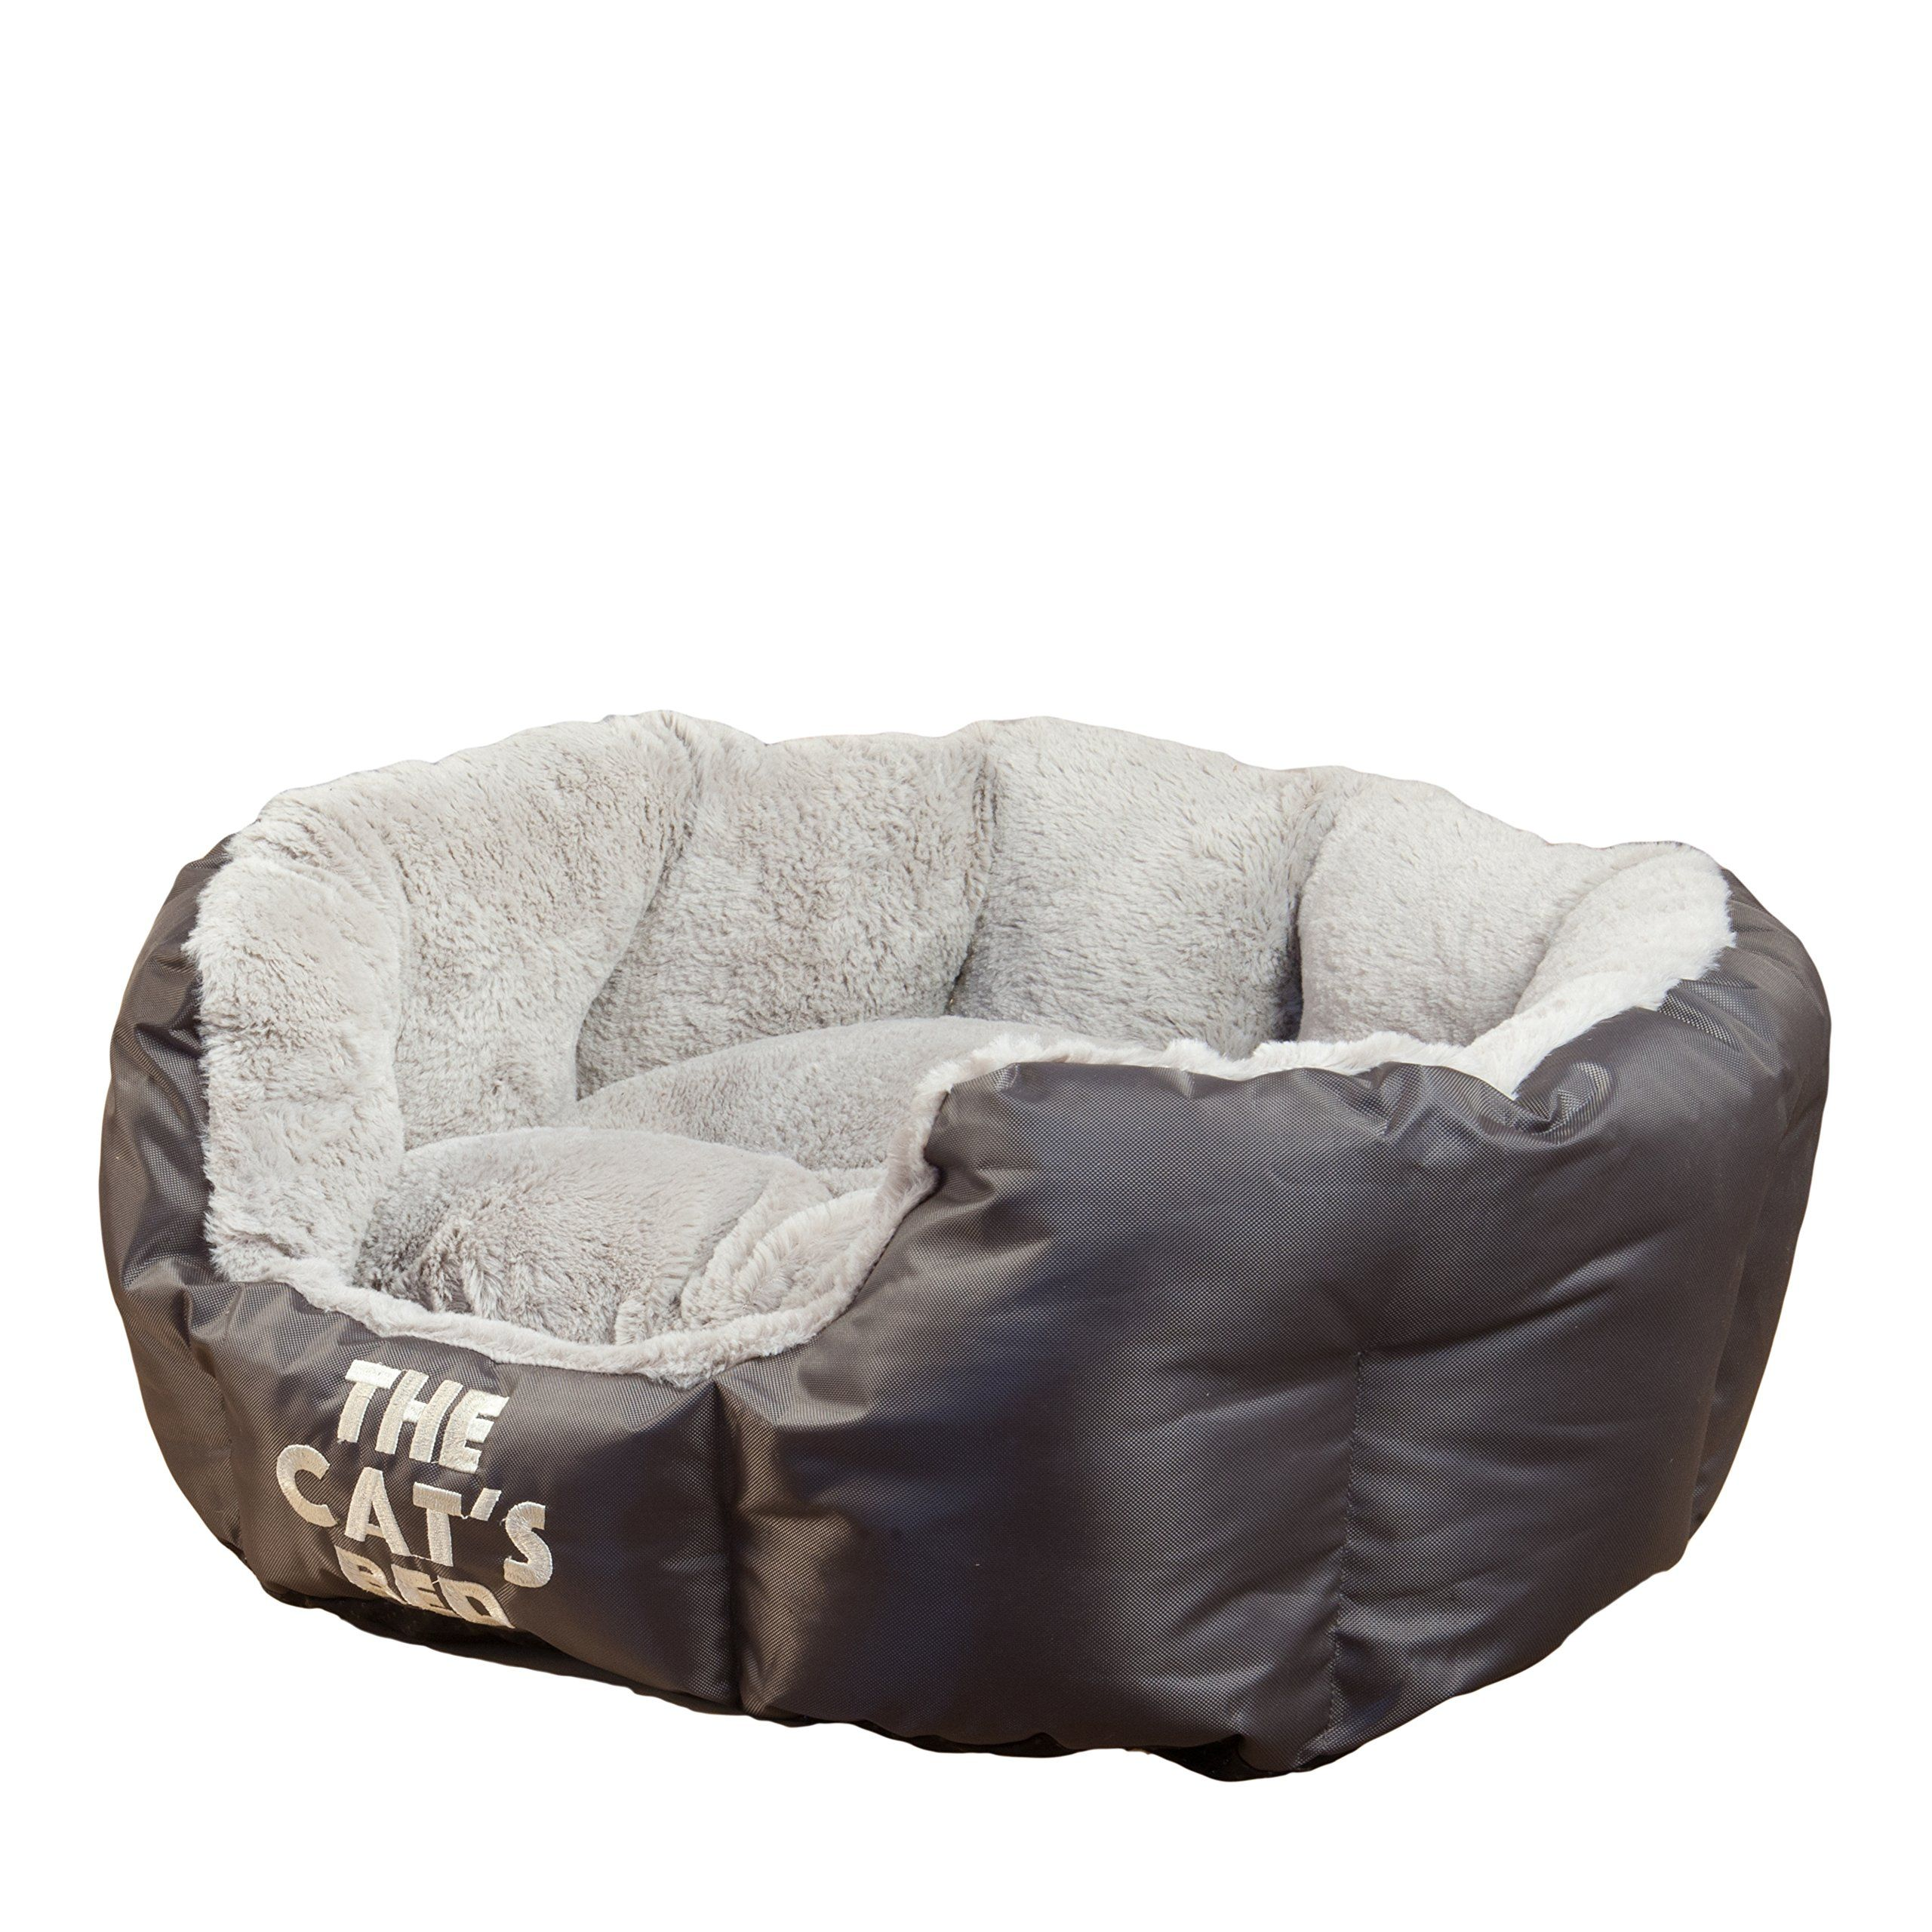 The Cats Bed Premium Plush Cat and Kitten Beds in Grey and